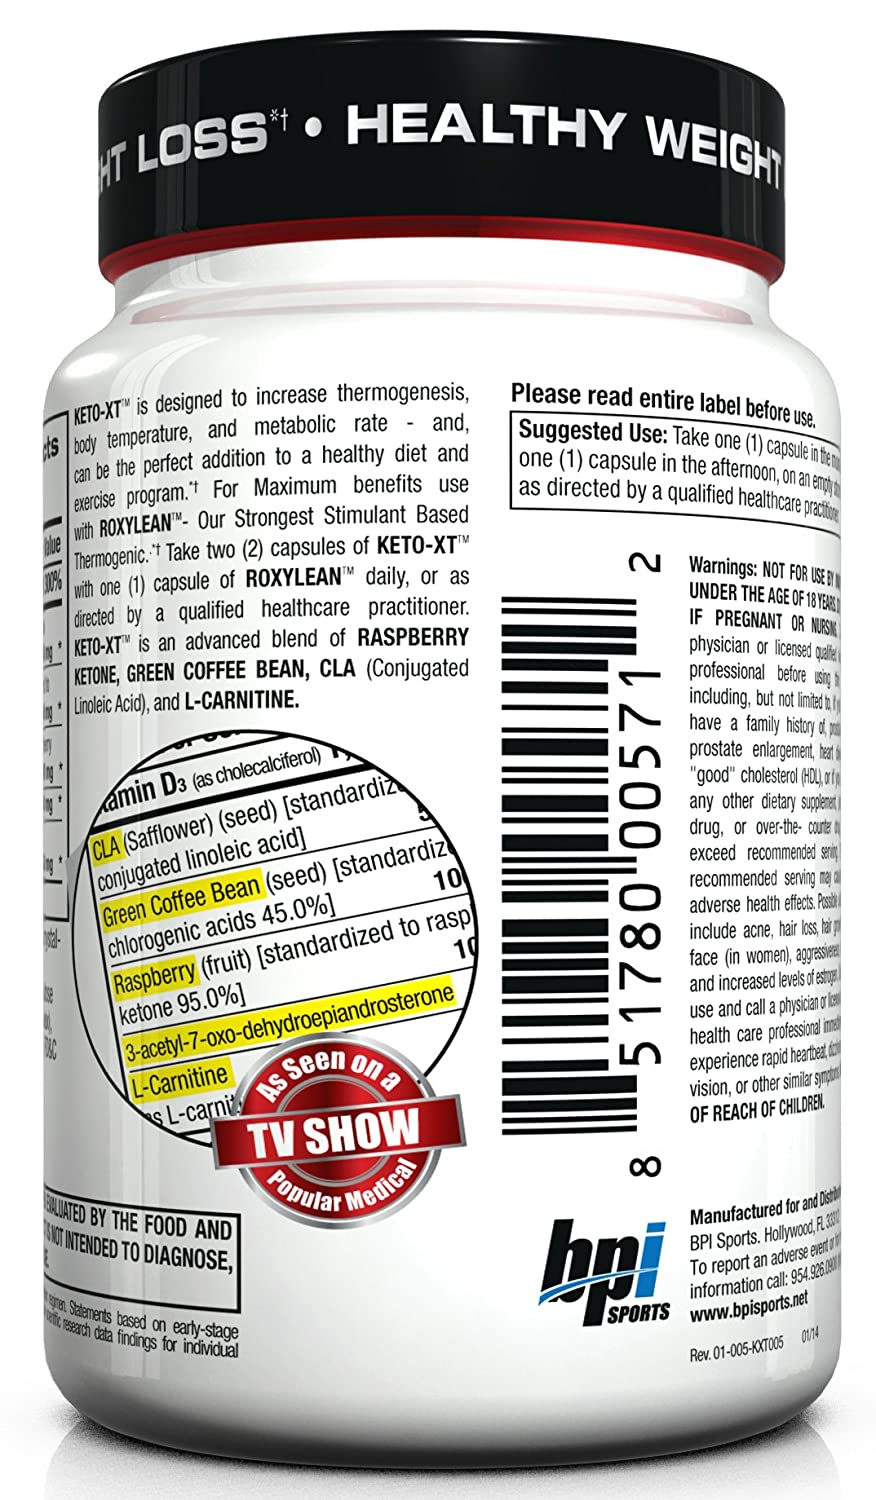 Amazon: Bpi Sports Herbal Mineral Supplement, Ketoxt, 60 Count: Health  & Personal Care